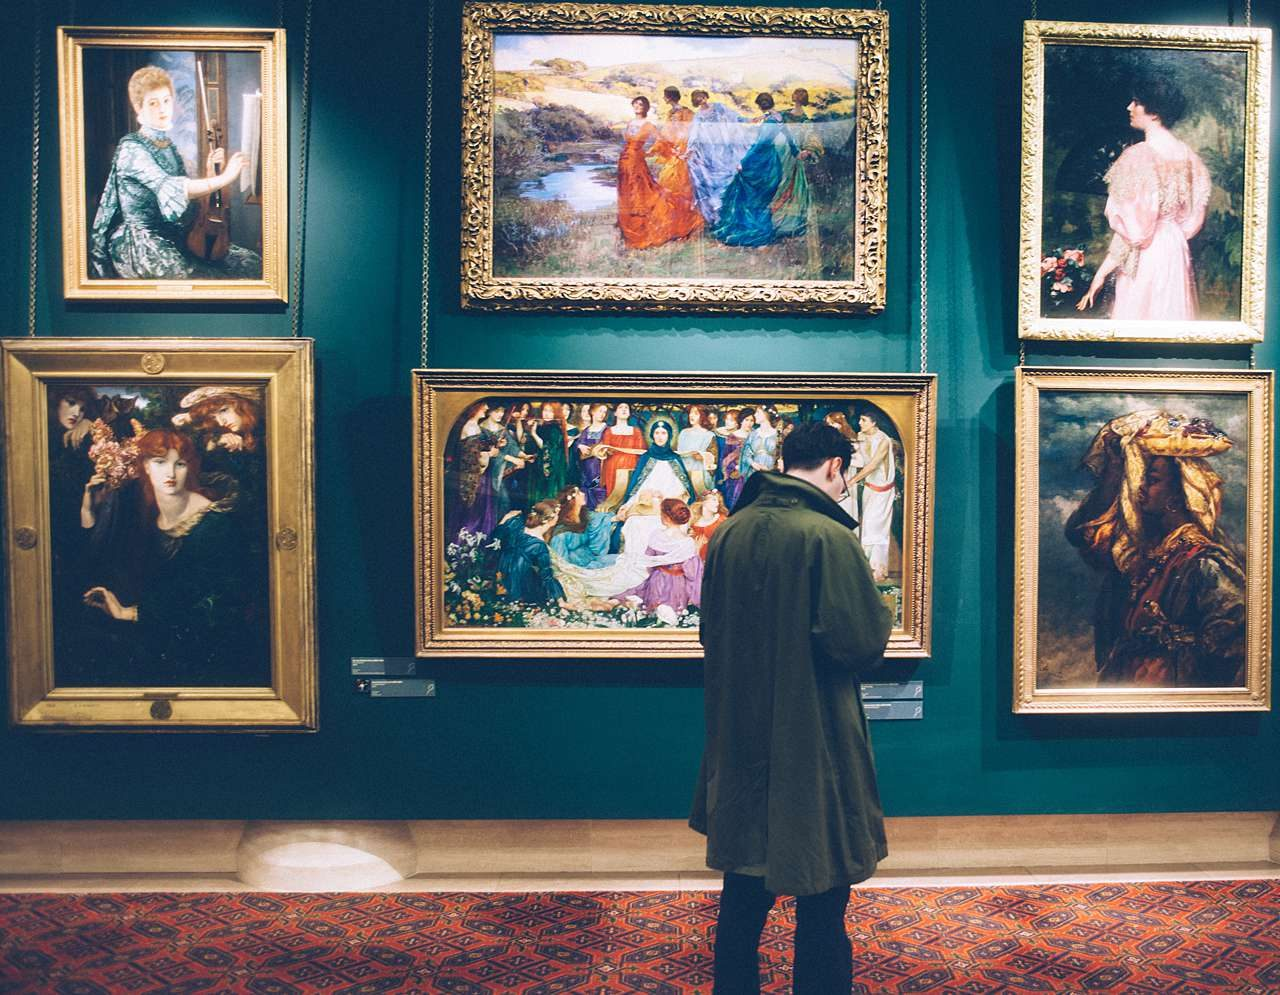 Museum paintings in ornate picture frames